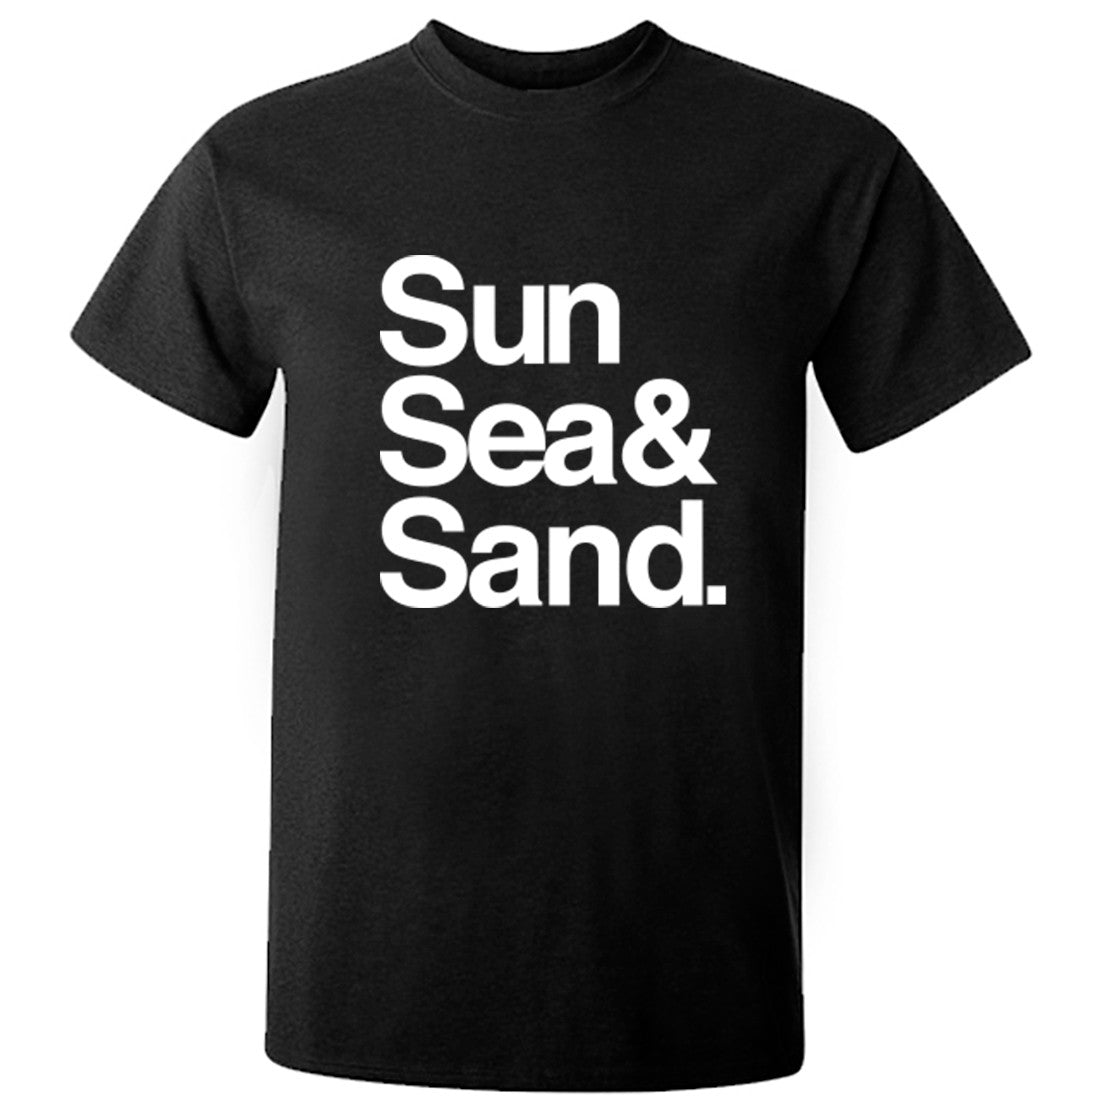 Sun Sea & Sand Unisex Fit T-Shirt K0775 - Illustrated Identity Ltd.